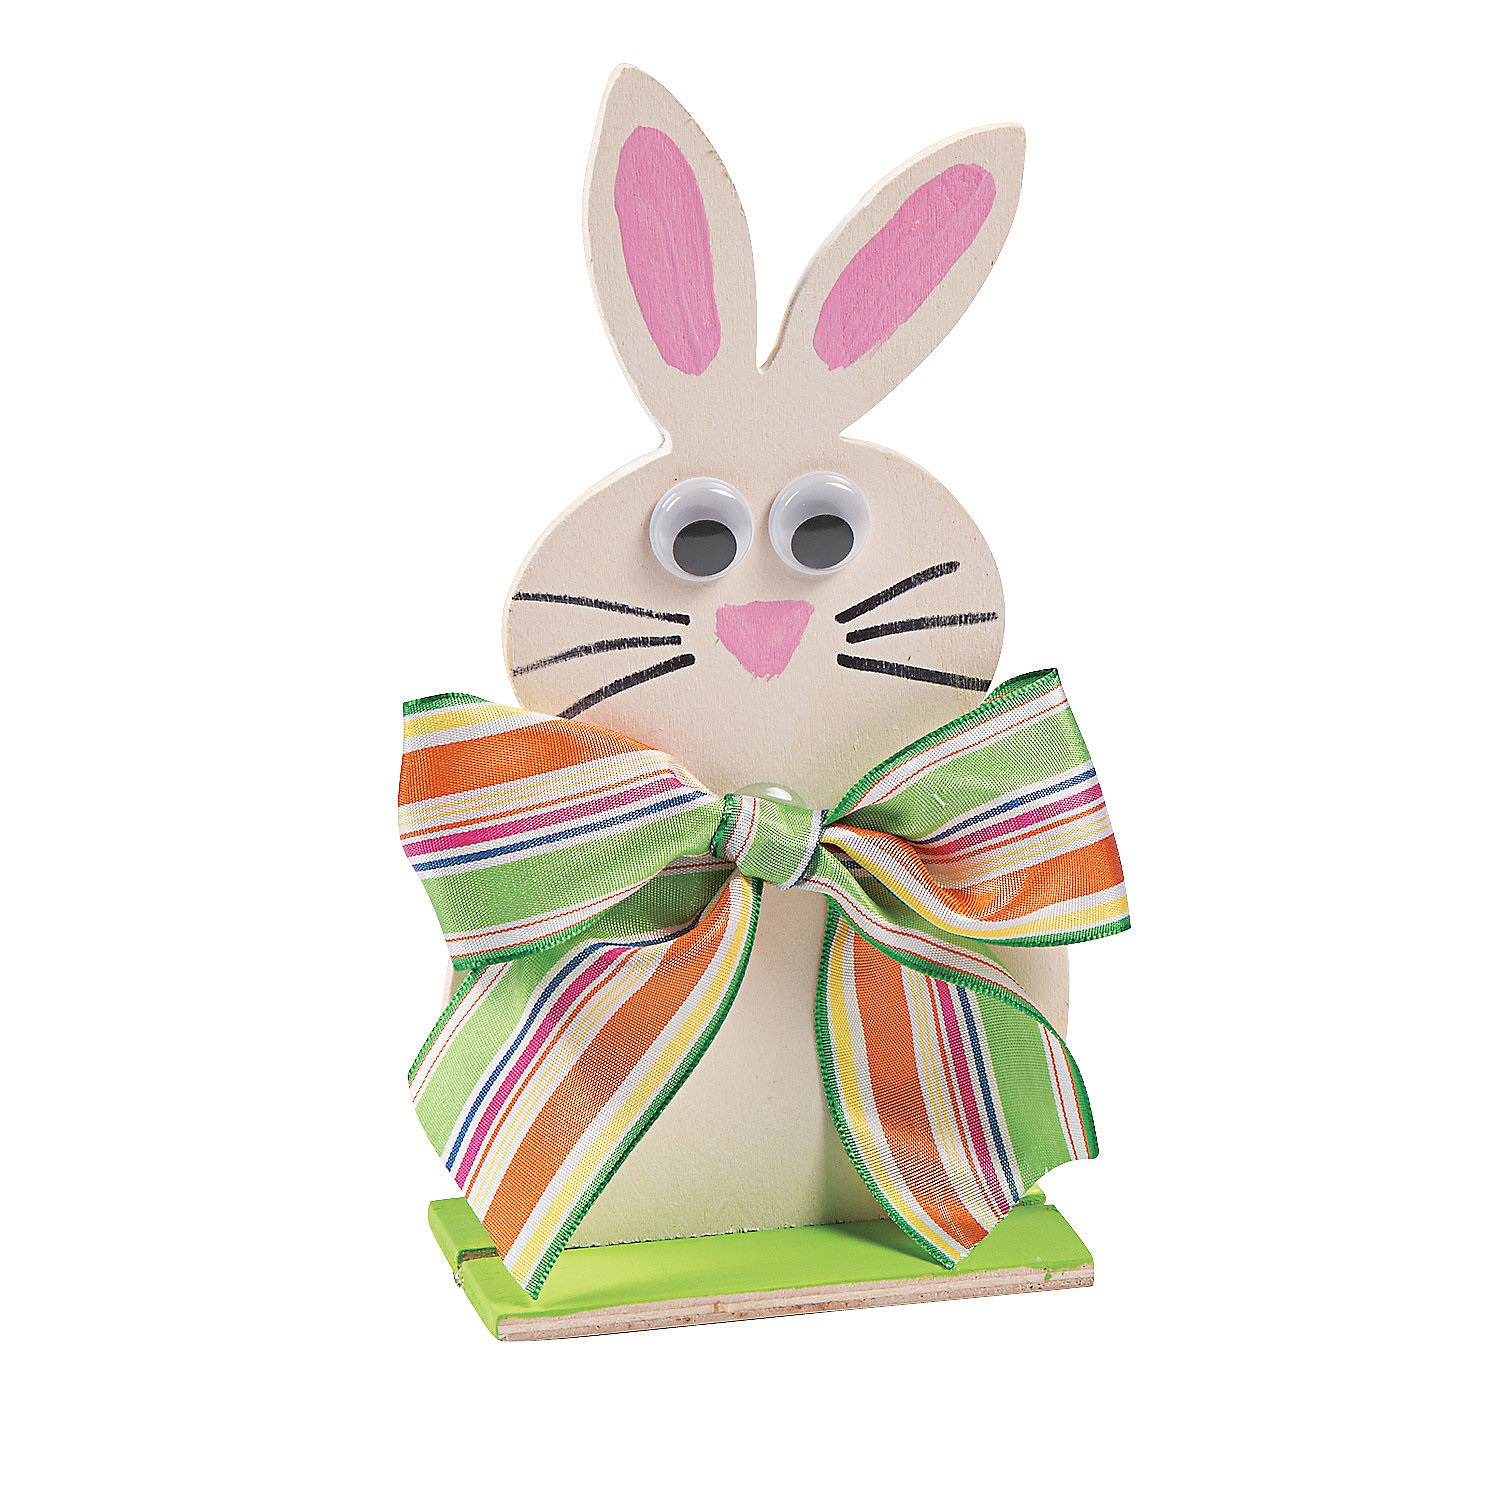 13763098-diy-bunny-stand-up-wooden-rabbit-oshc-ooshc-kids-craft-kits-activation-shopping-centre-2.jpg